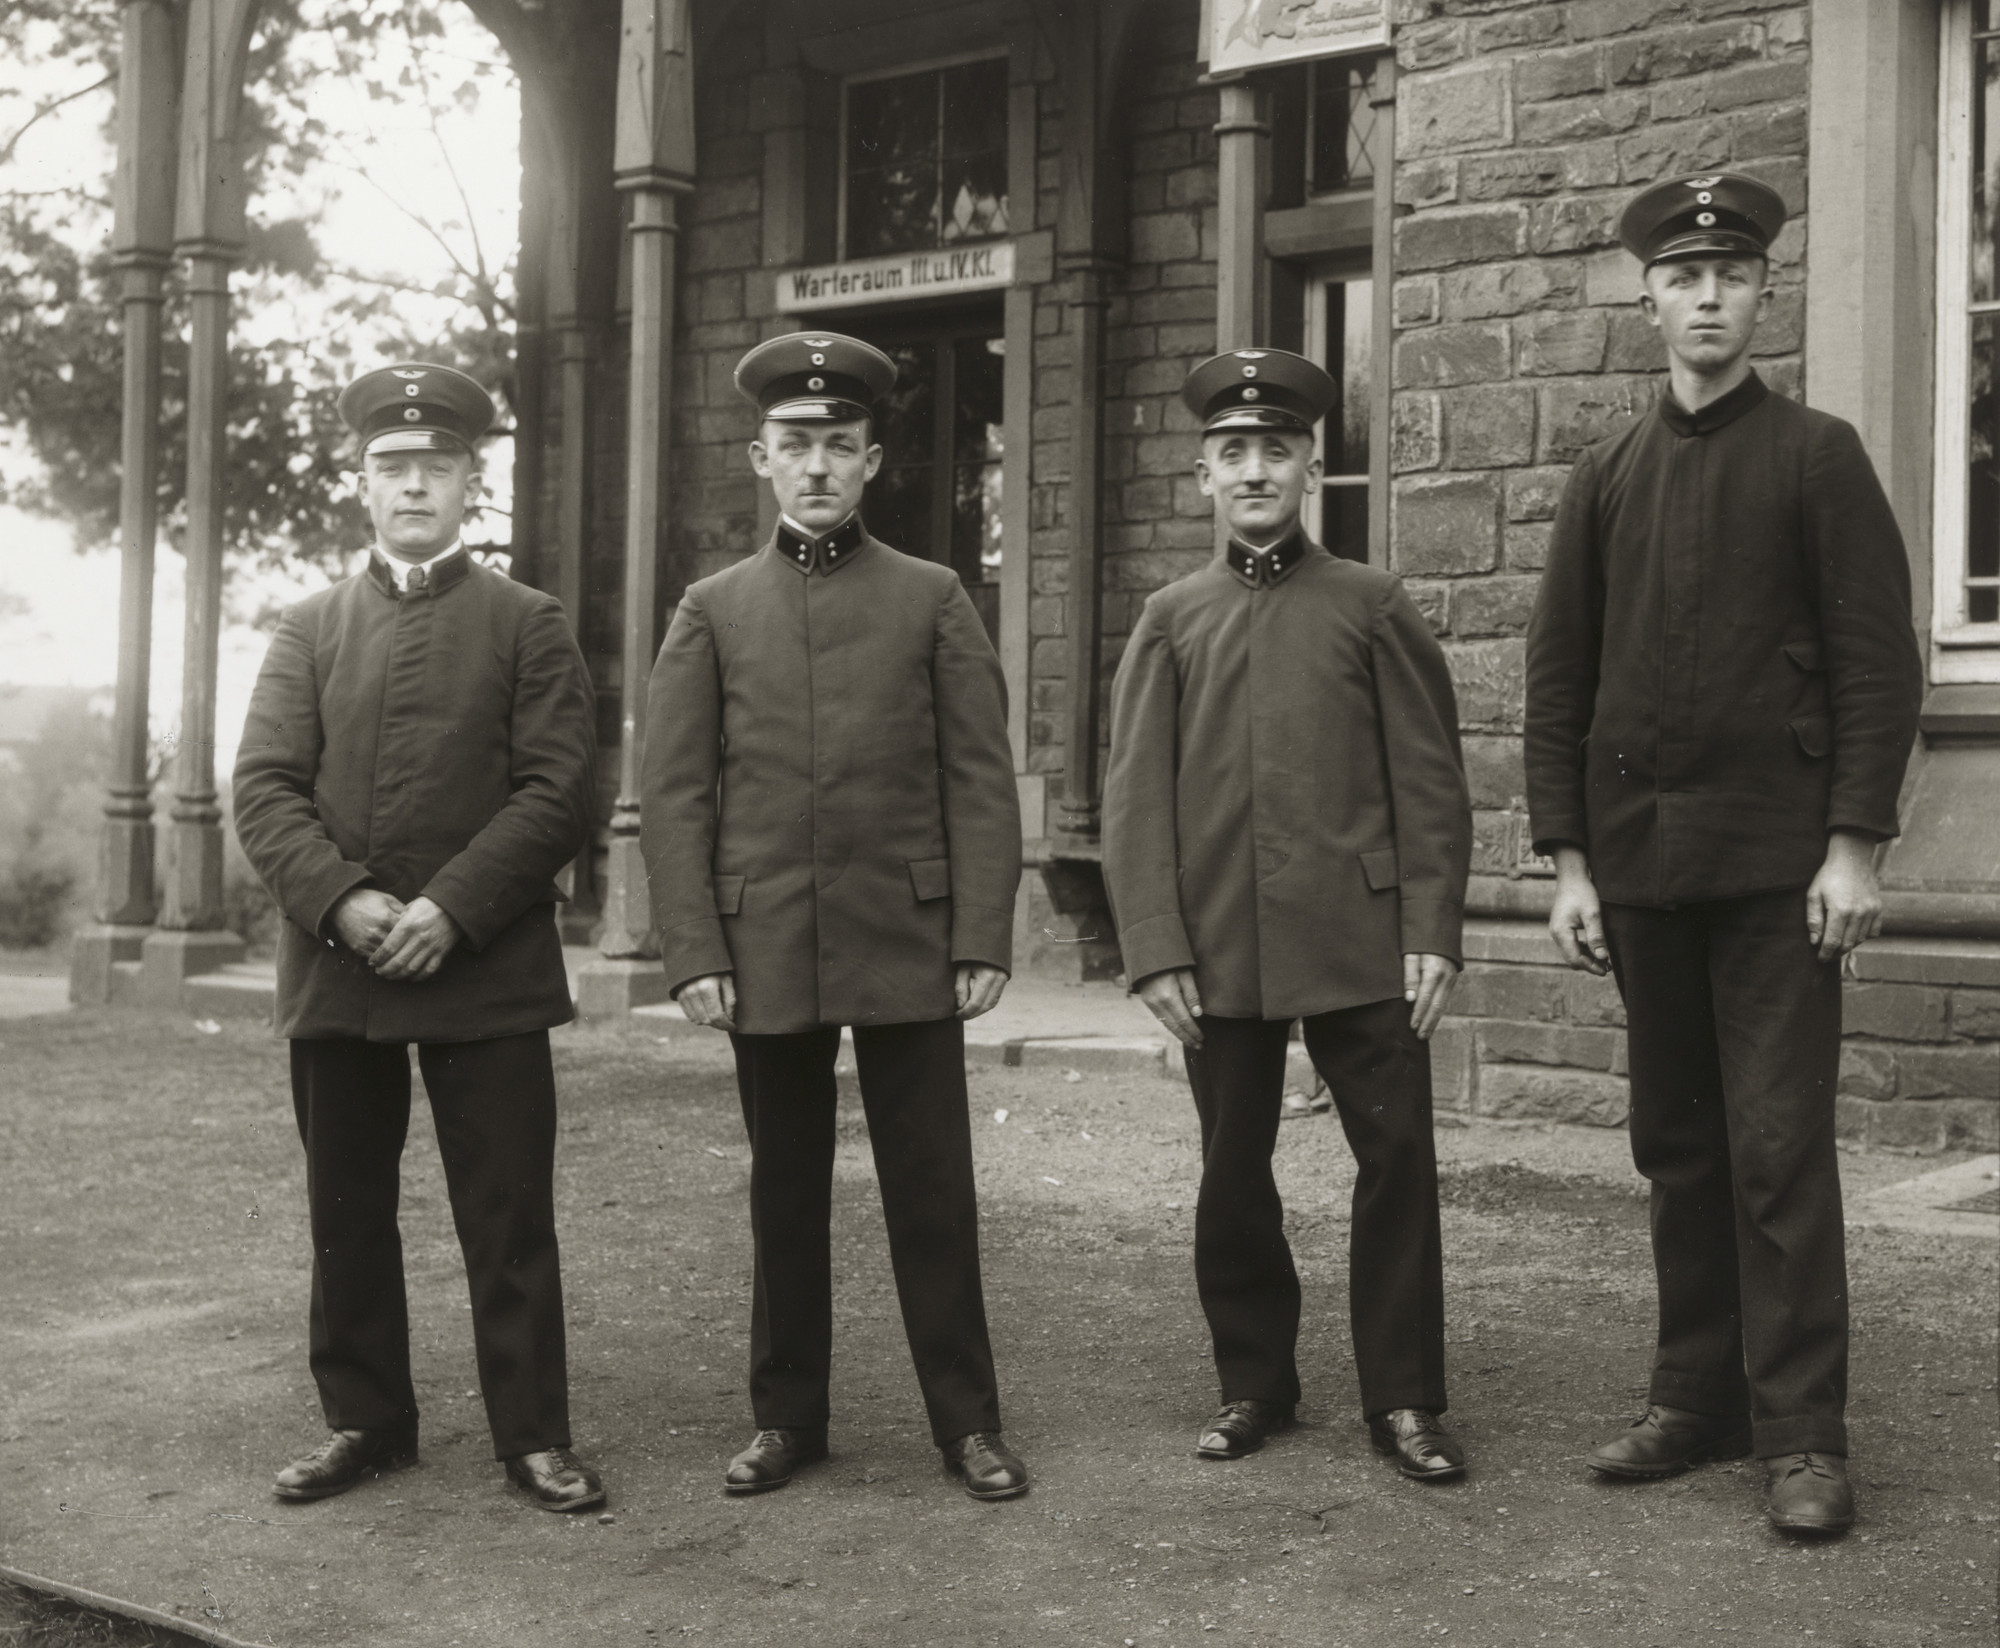 August Sander. Railway Officials. c. 1925